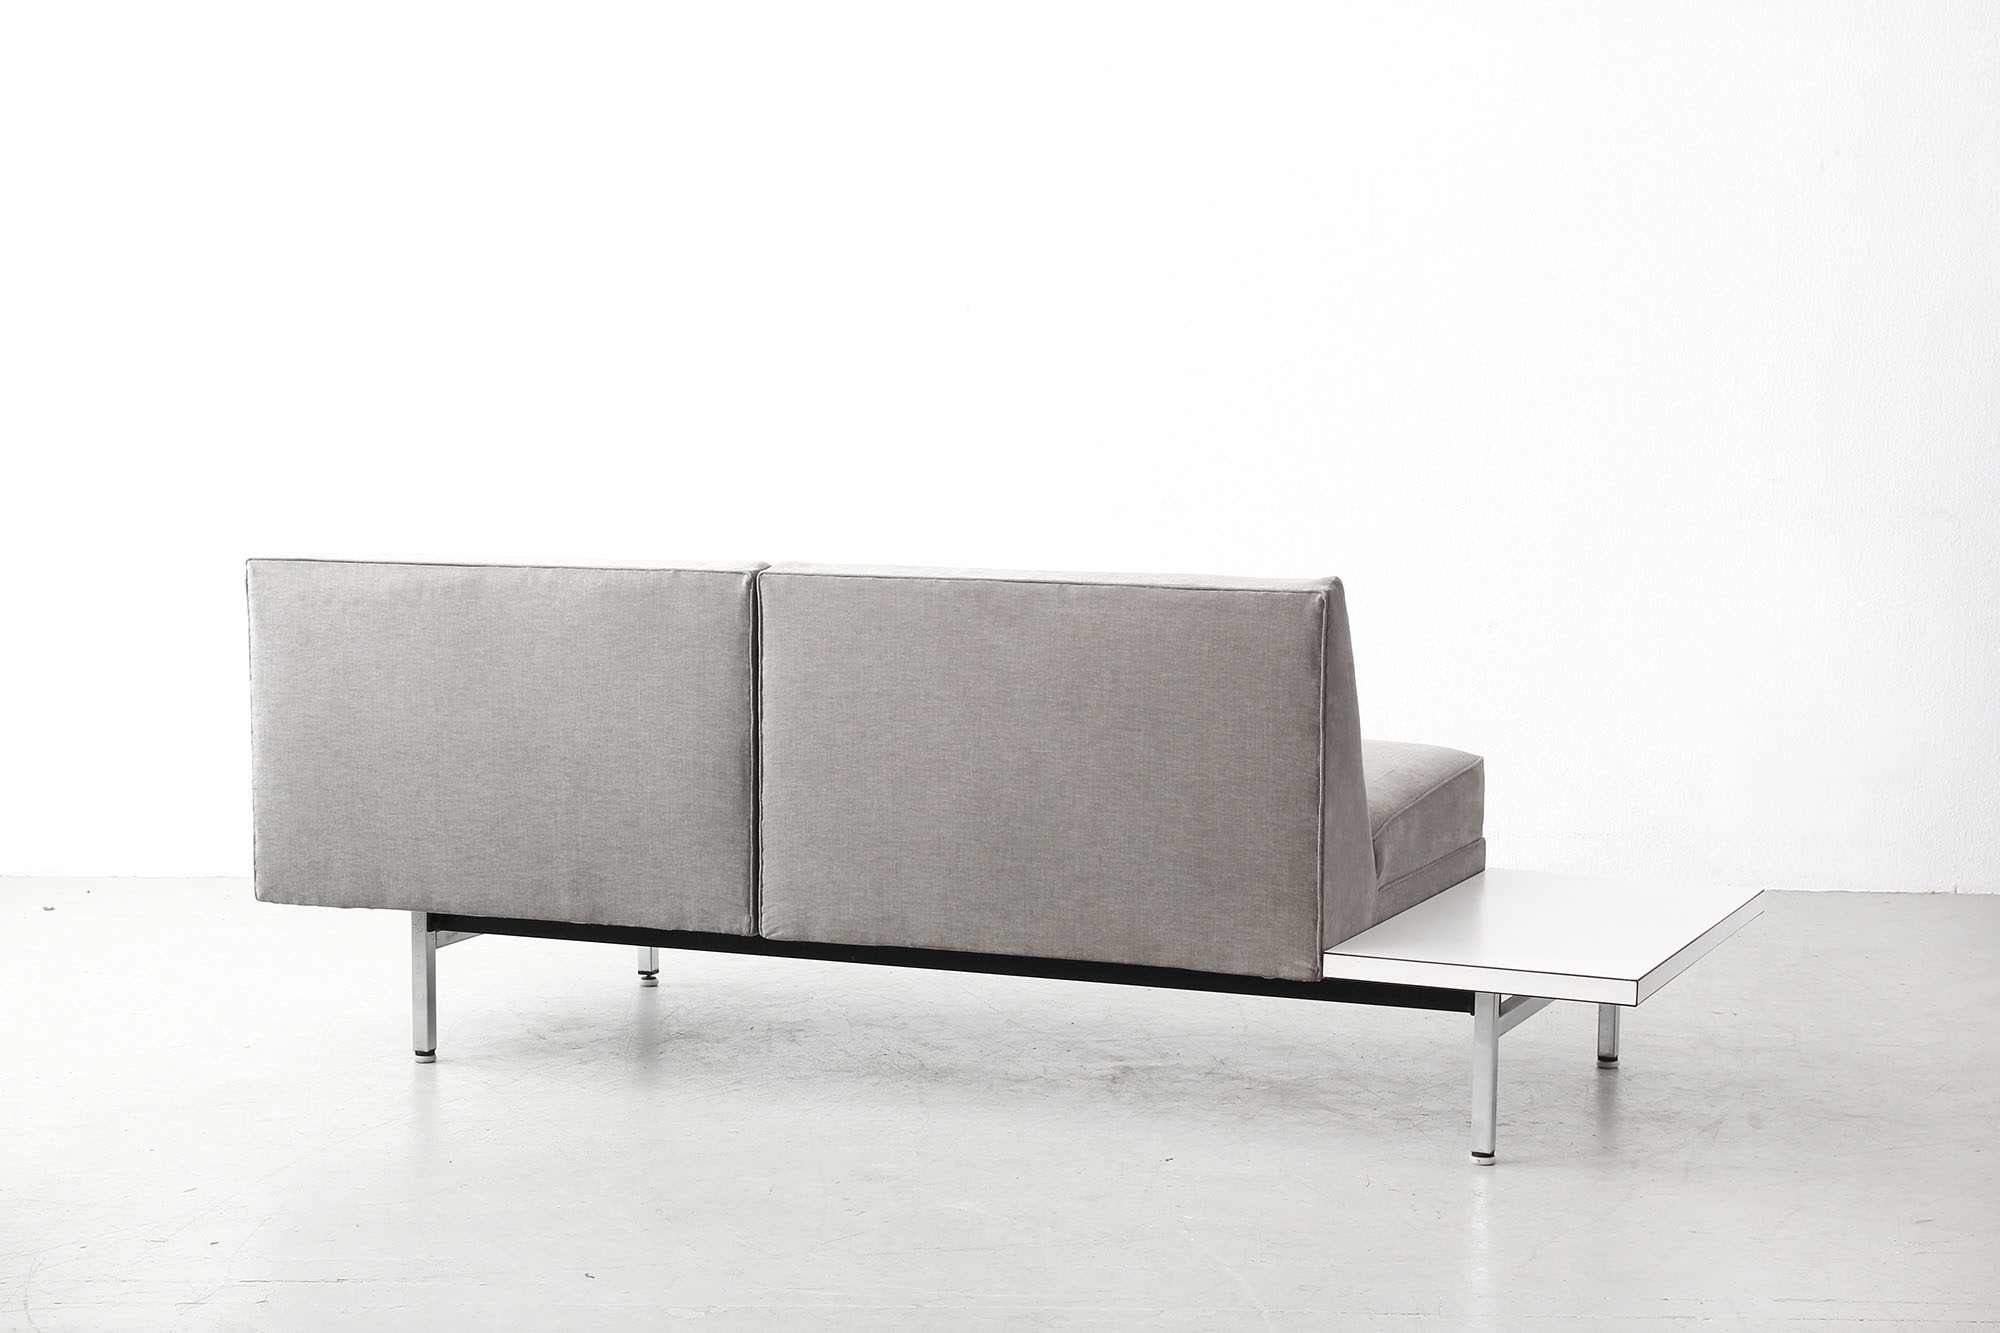 herman miller modular sofa single bed as galerie bachmann  system zweisitzer george